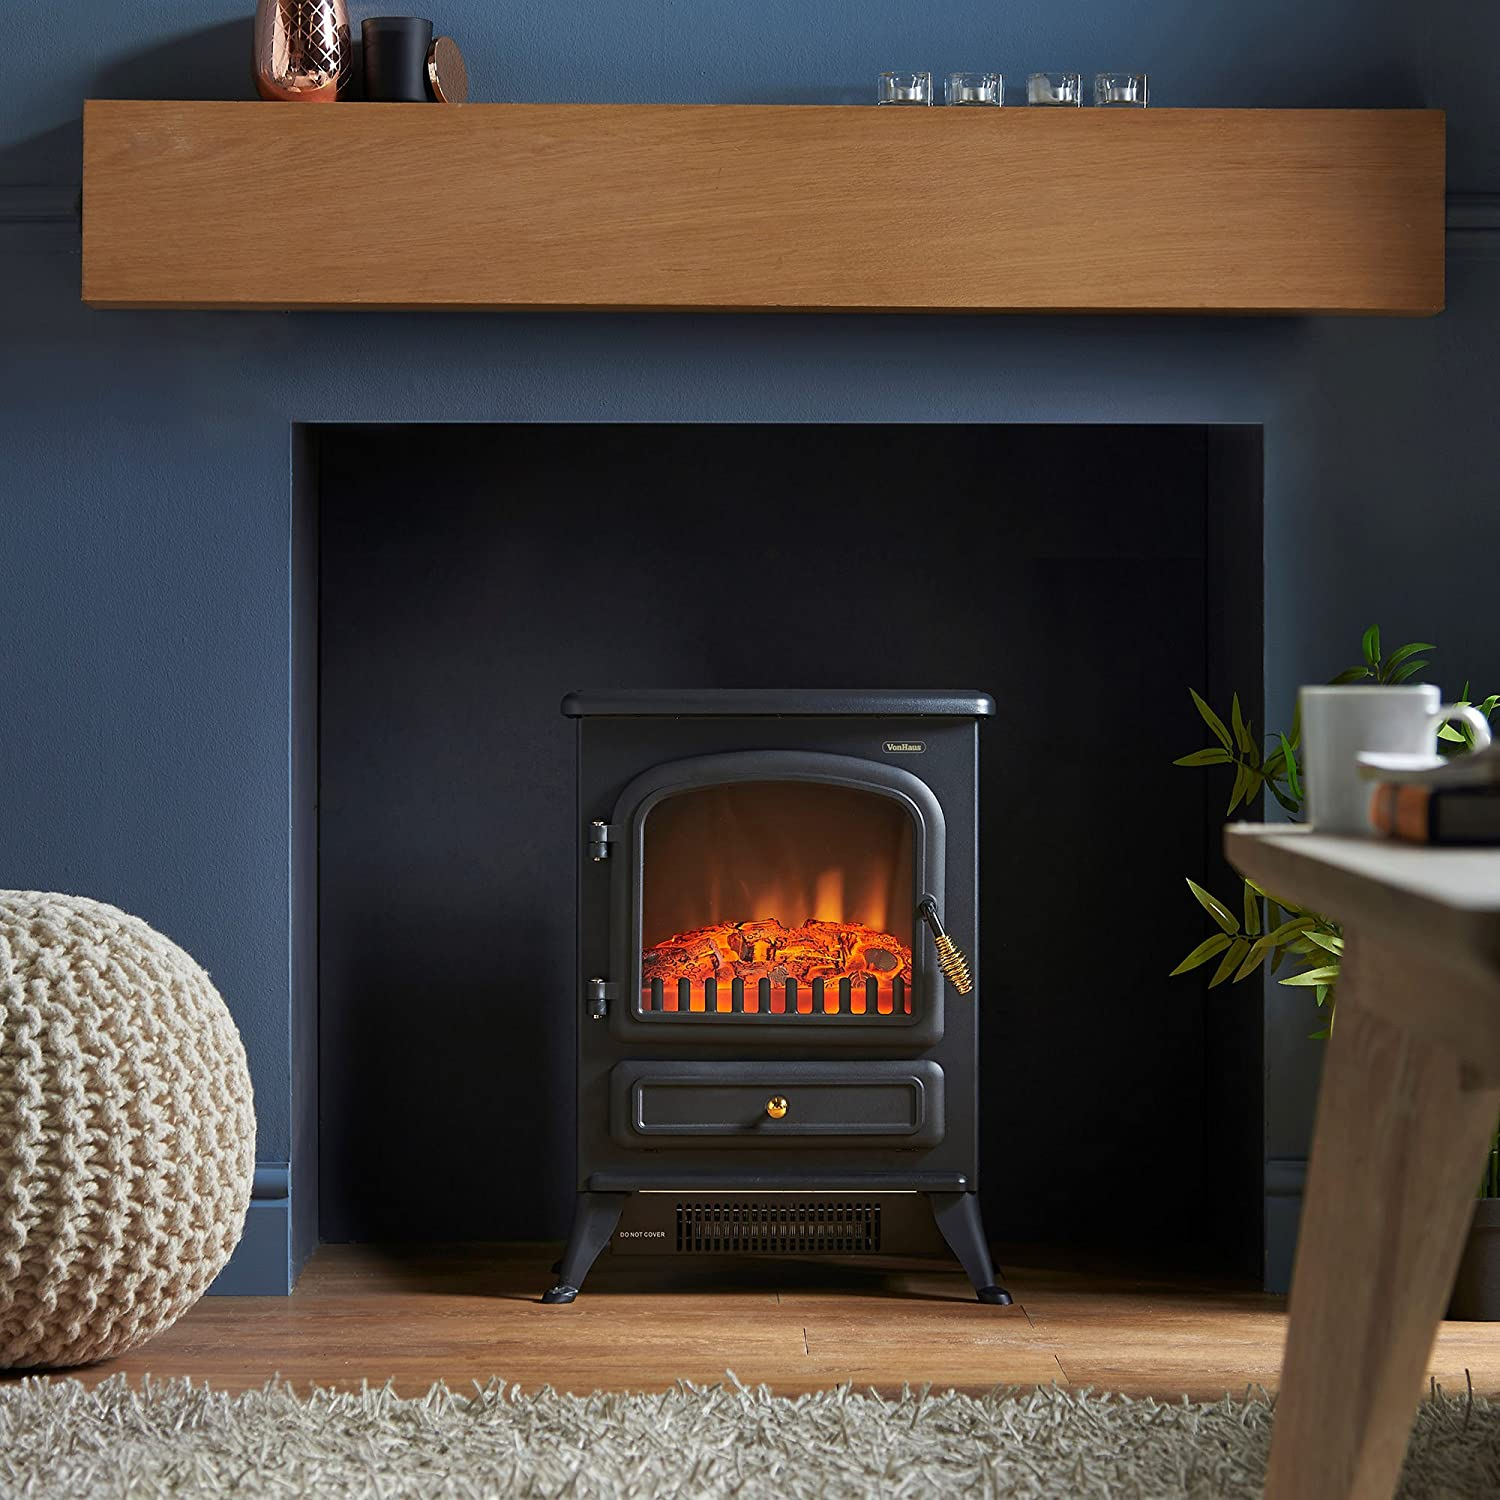 81XUp86E22L. SL1500  Top Result 50 Unique Best Wood Fireplace Insert